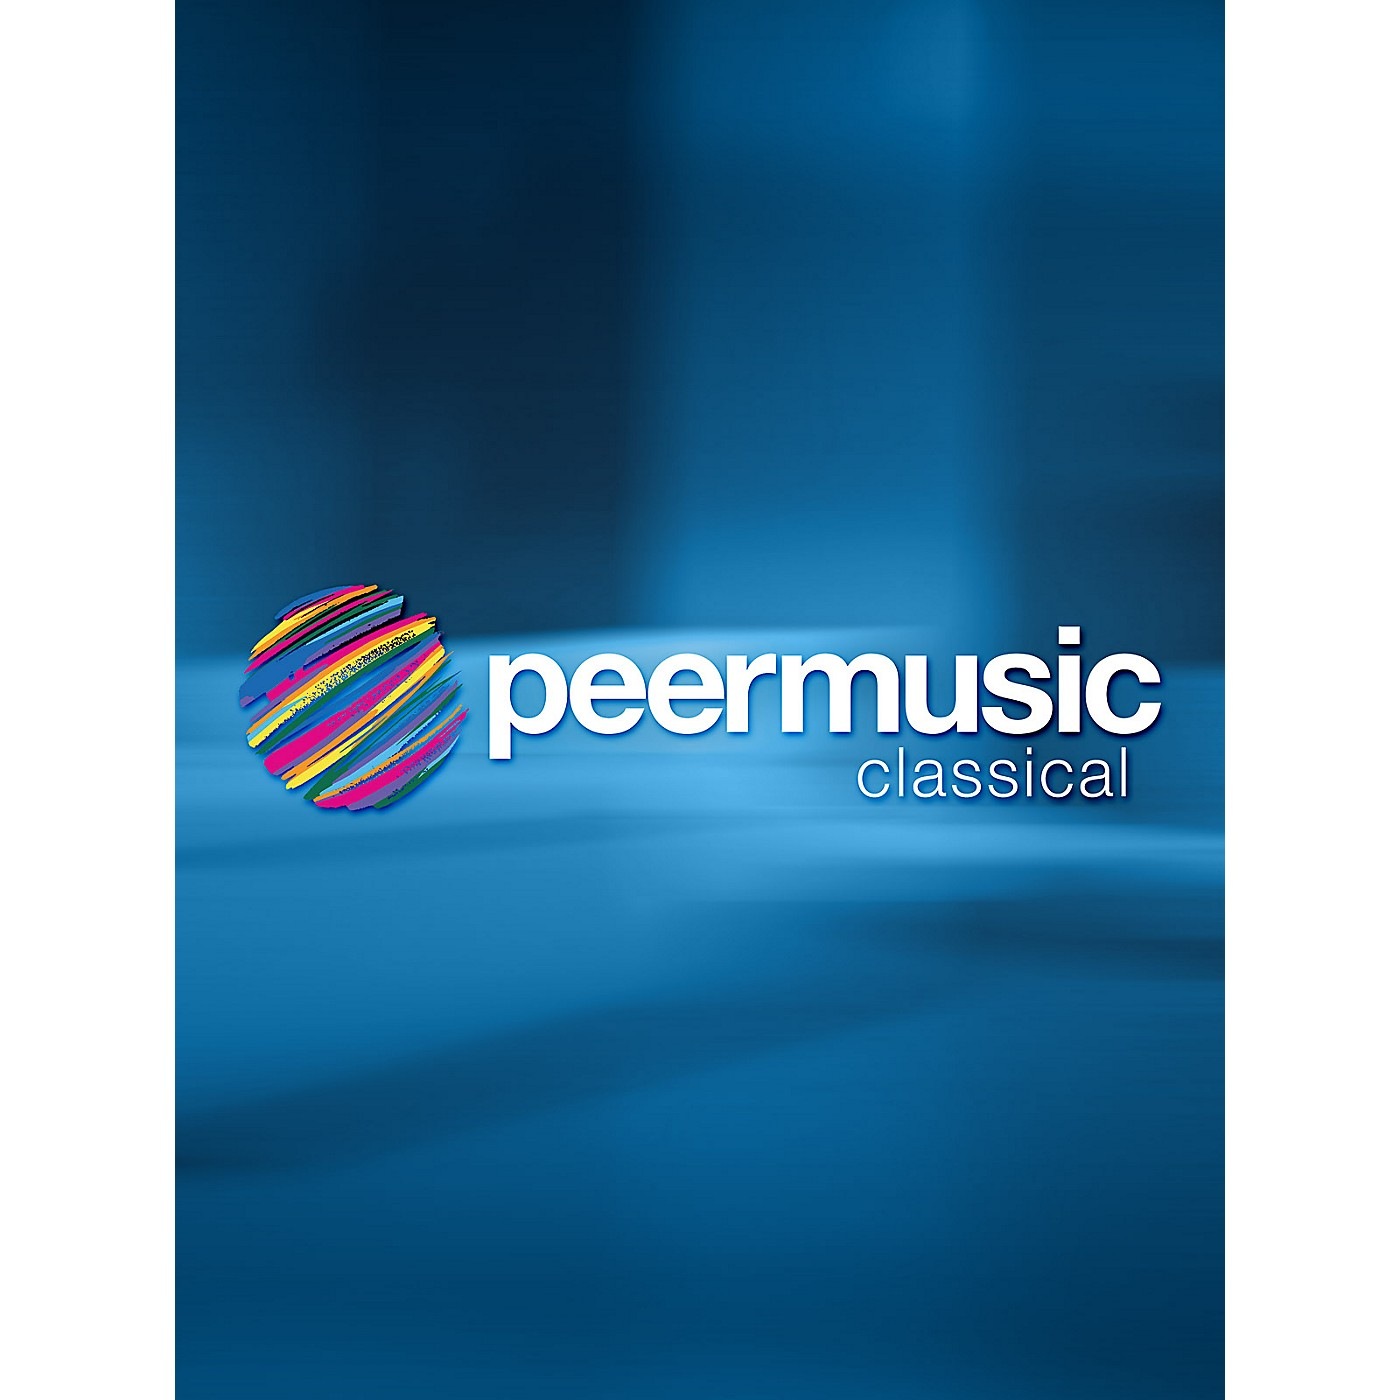 Peer Music Trio (Violin, Viola and Cello, Study Score) Peermusic Classical Series Softcover Composed by Otte thumbnail